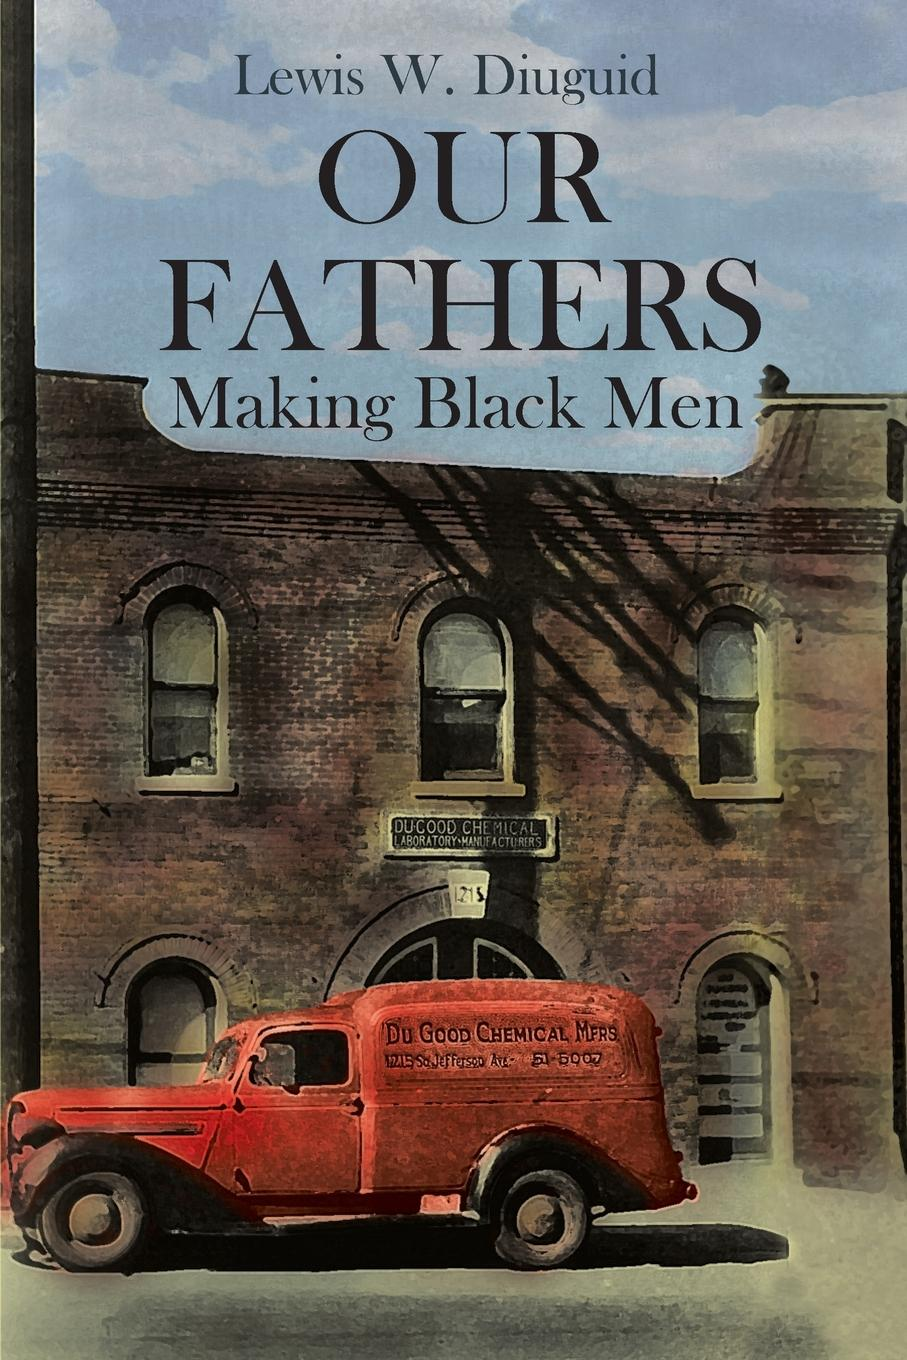 Lewis W. Diuguid Our Fathers. Making Black Men